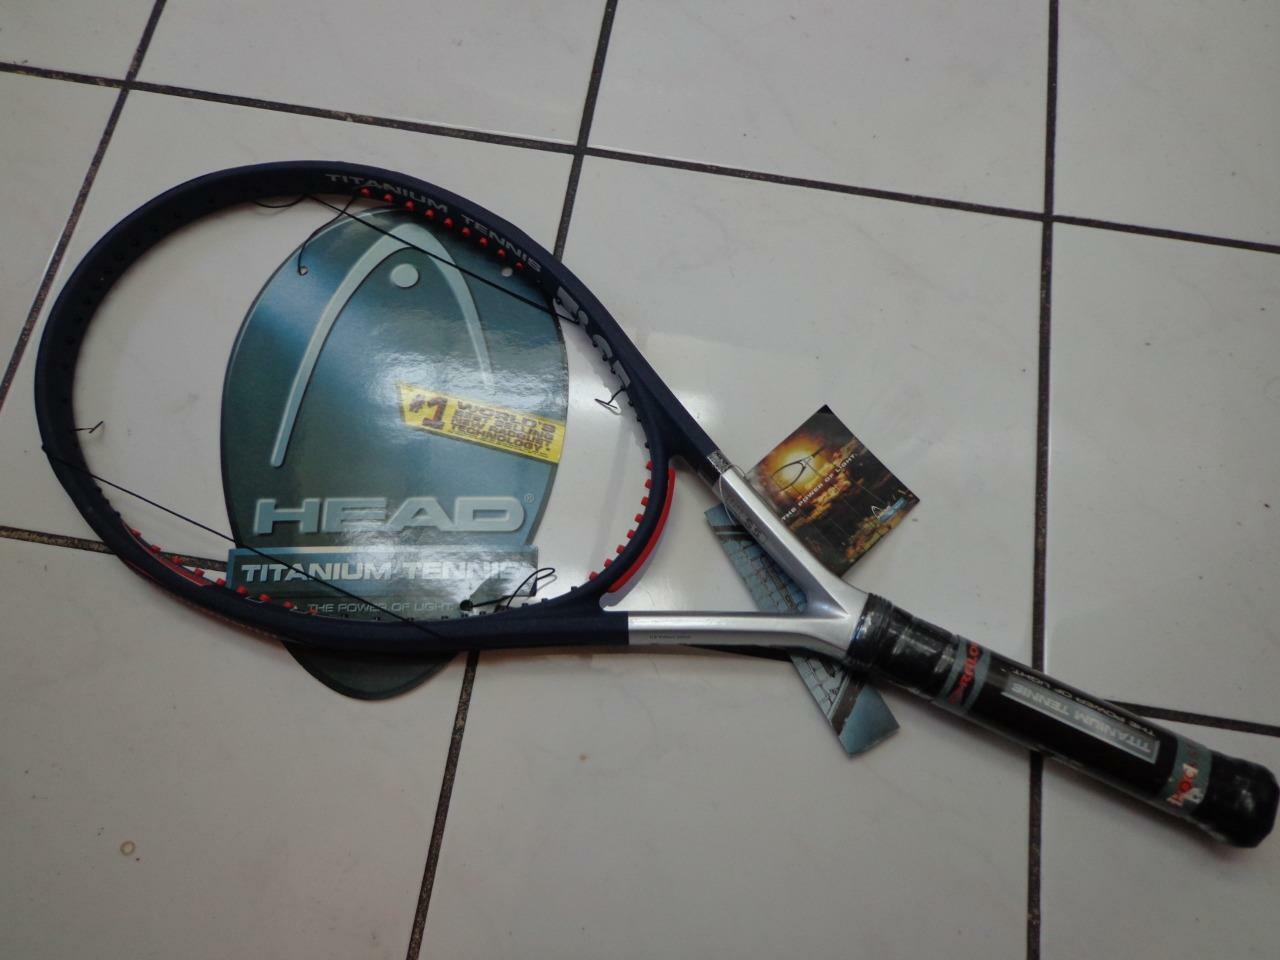 NEW Head Ti. S5 Comfort Zone 4 3 8 grip Tennis Racquet